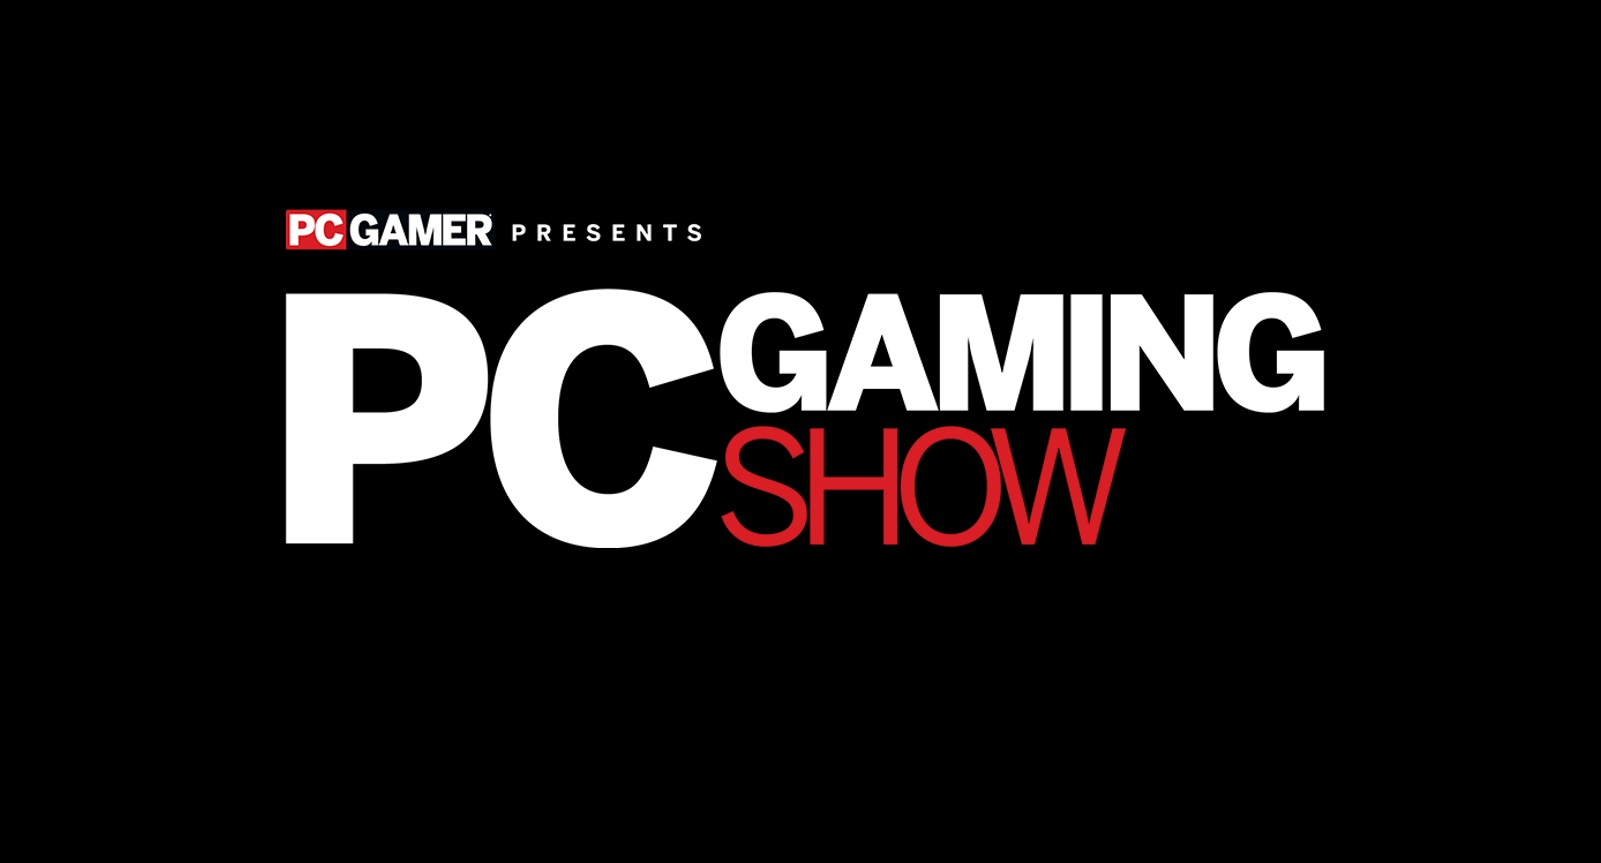 PC Gaming Show: The highlights of the E3 event at a glance